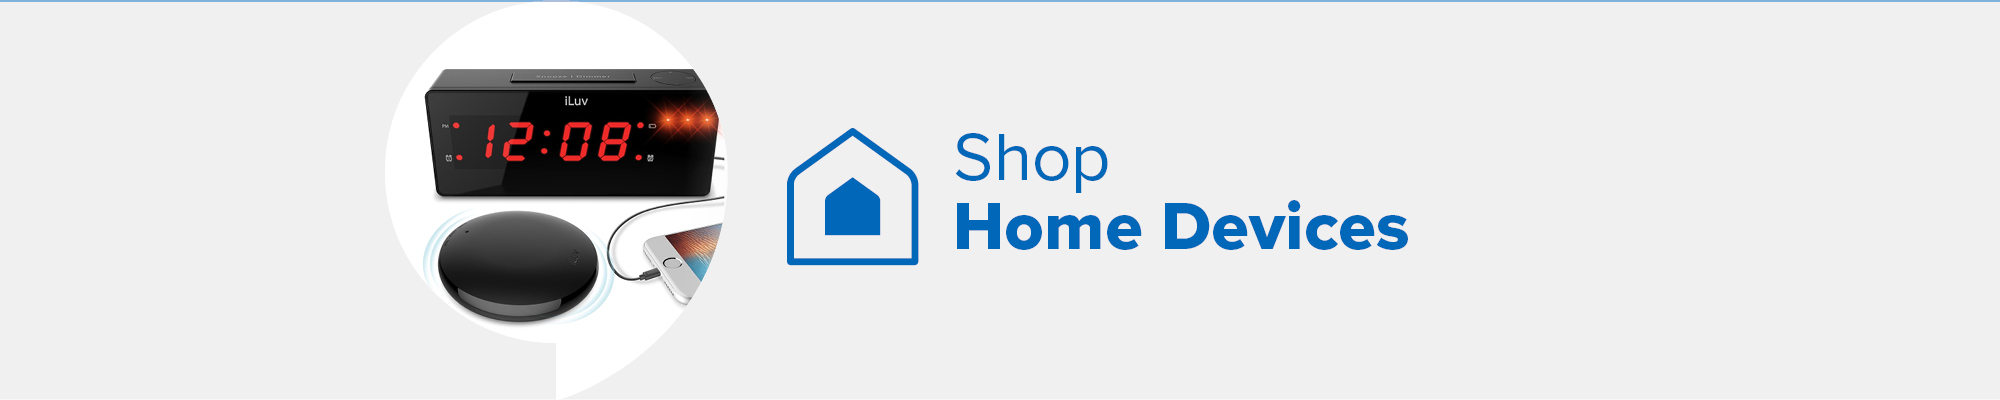 hl-shop-category-home-devices